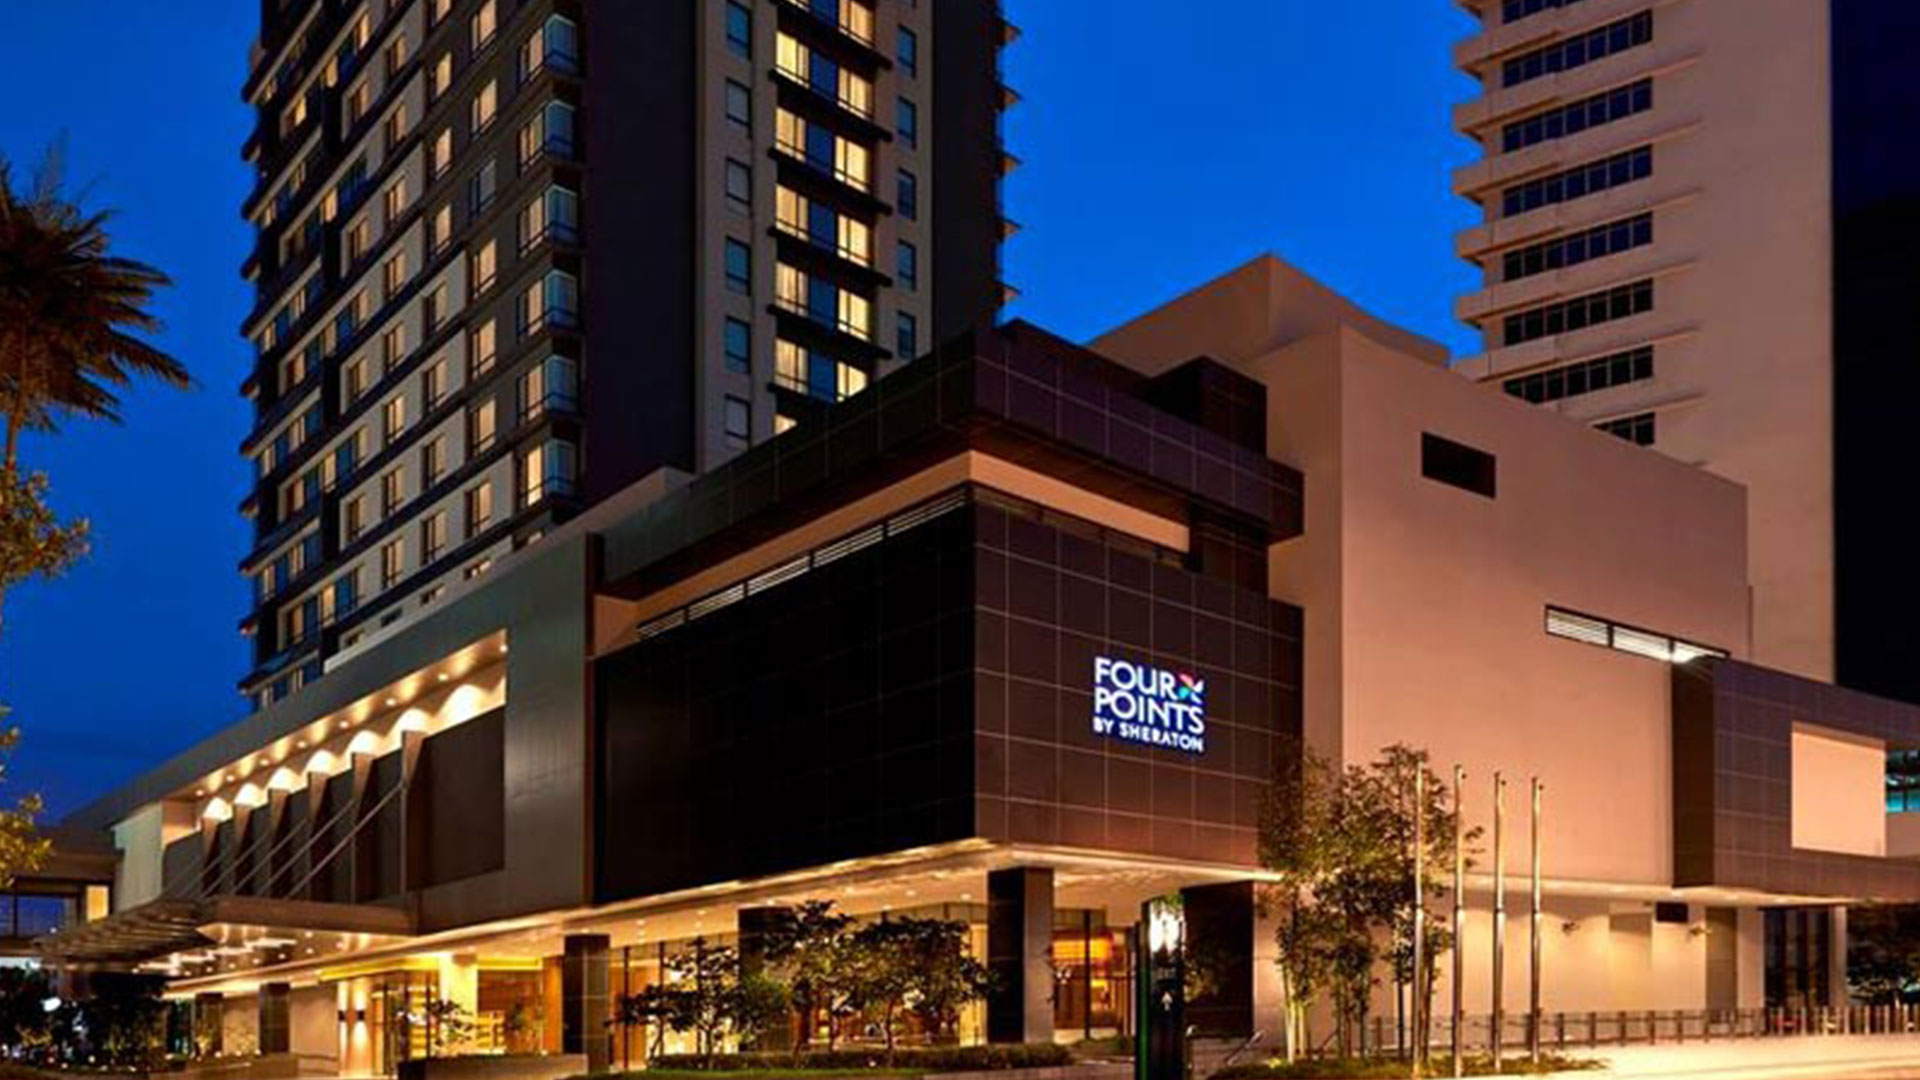 Four-Points-by-Sheraton-Puchong-banner